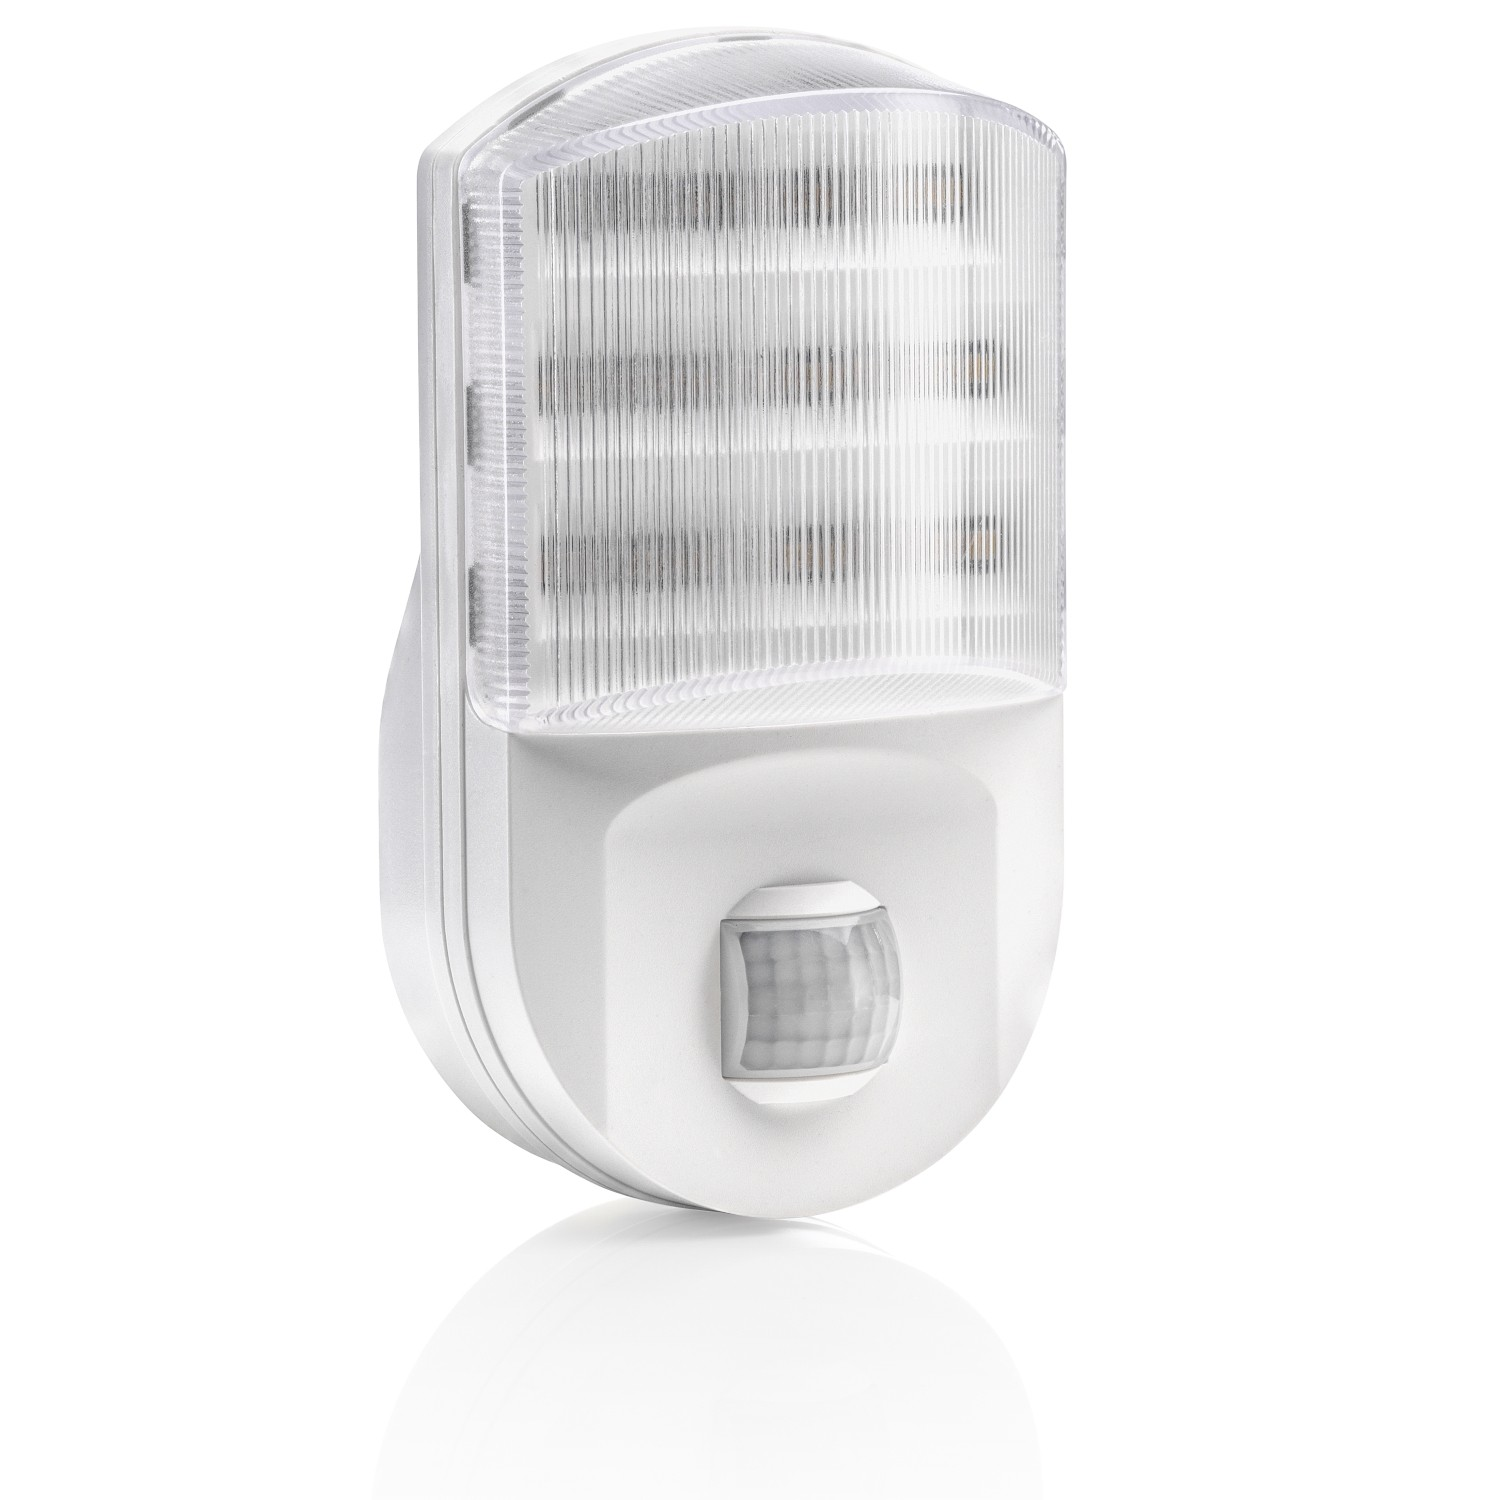 Super Bright Plug In Pir Motion Sensor Led Night Light